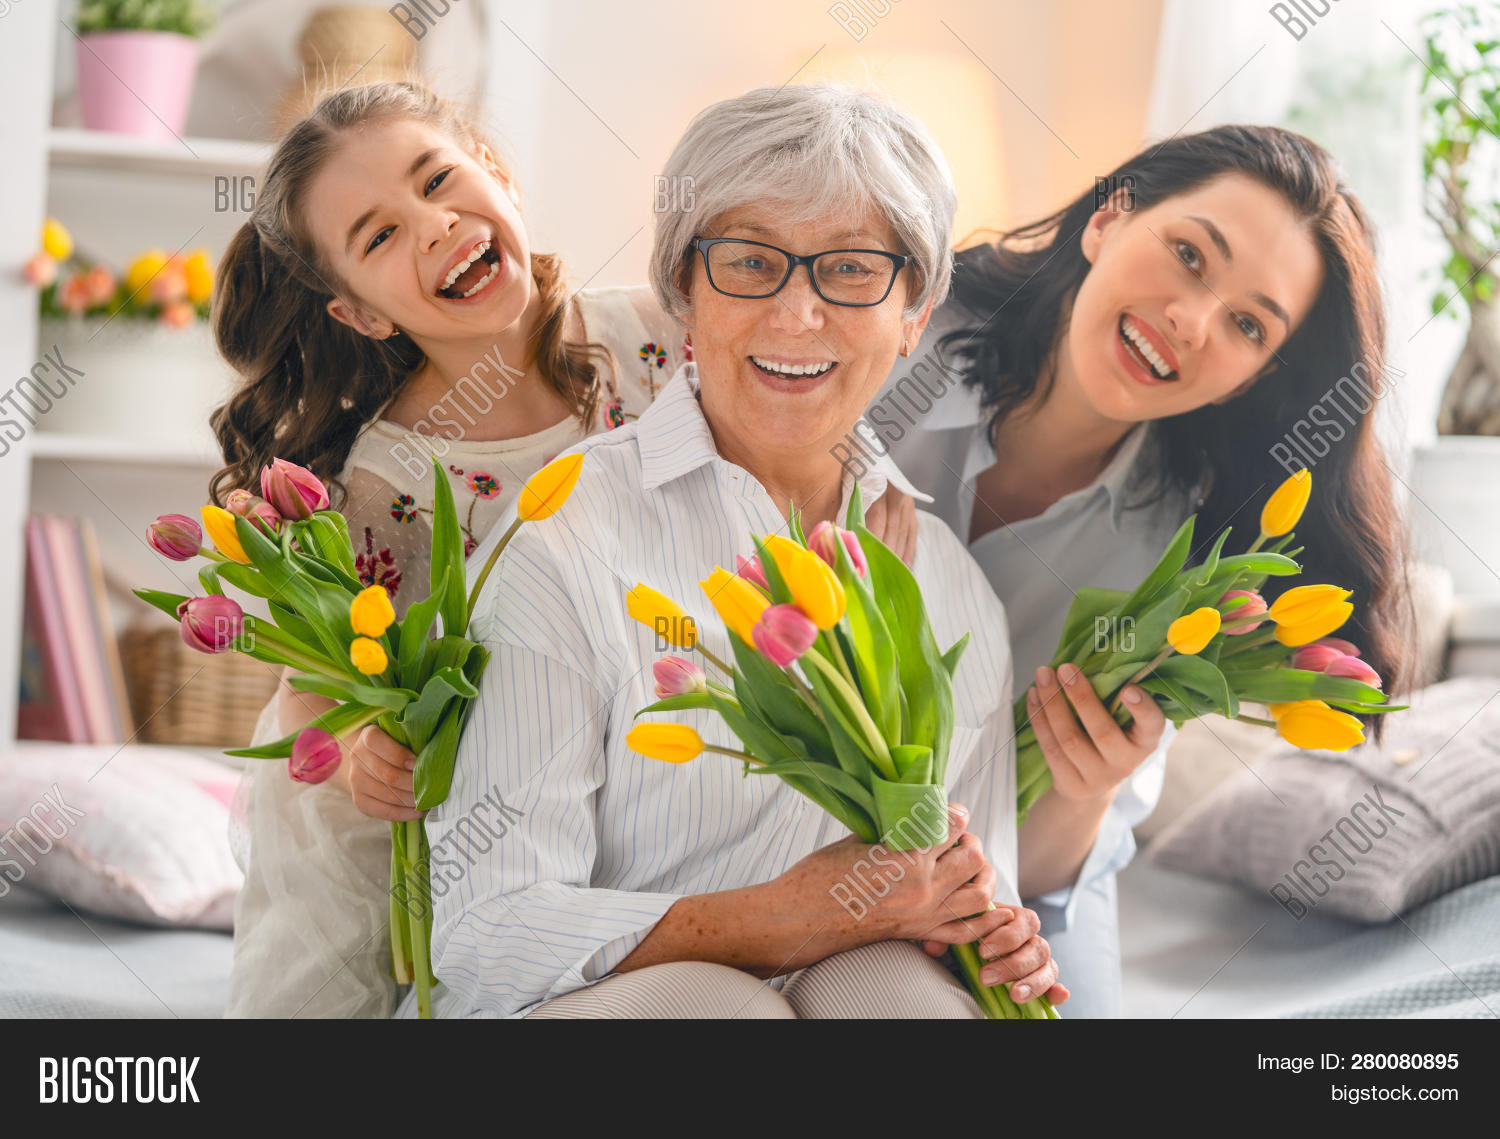 8,adult,bouquet,care,caucasian,child,childhood,daughter,day,eighth,embrace,family,female,flowers,fondness,generation,gift,girl,giving,grandma,grandmother,granny,happiness,happy,healthy,home,hugging,indoors,international,kid,laugh,lifestyle,love,lovely,march,mom,morning,mother,mum,parent,parenting,people,playing,room,smiling,sunlight,together,tulips,woman,young